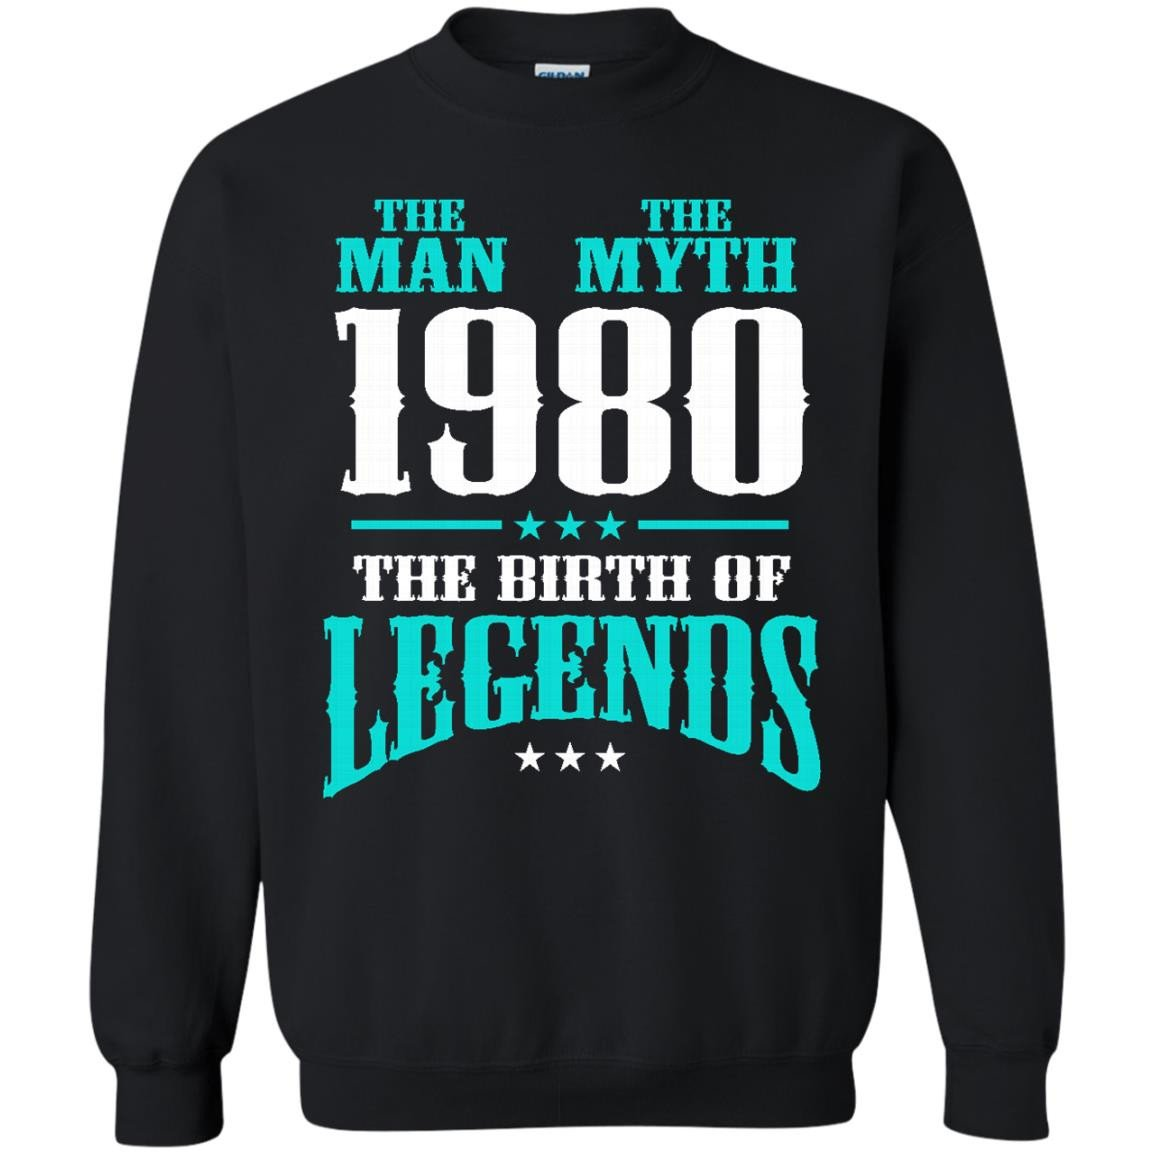 1980 Shirts The Man The Myth The Birth of Legends T-shirts Hoodies Sweatshirts